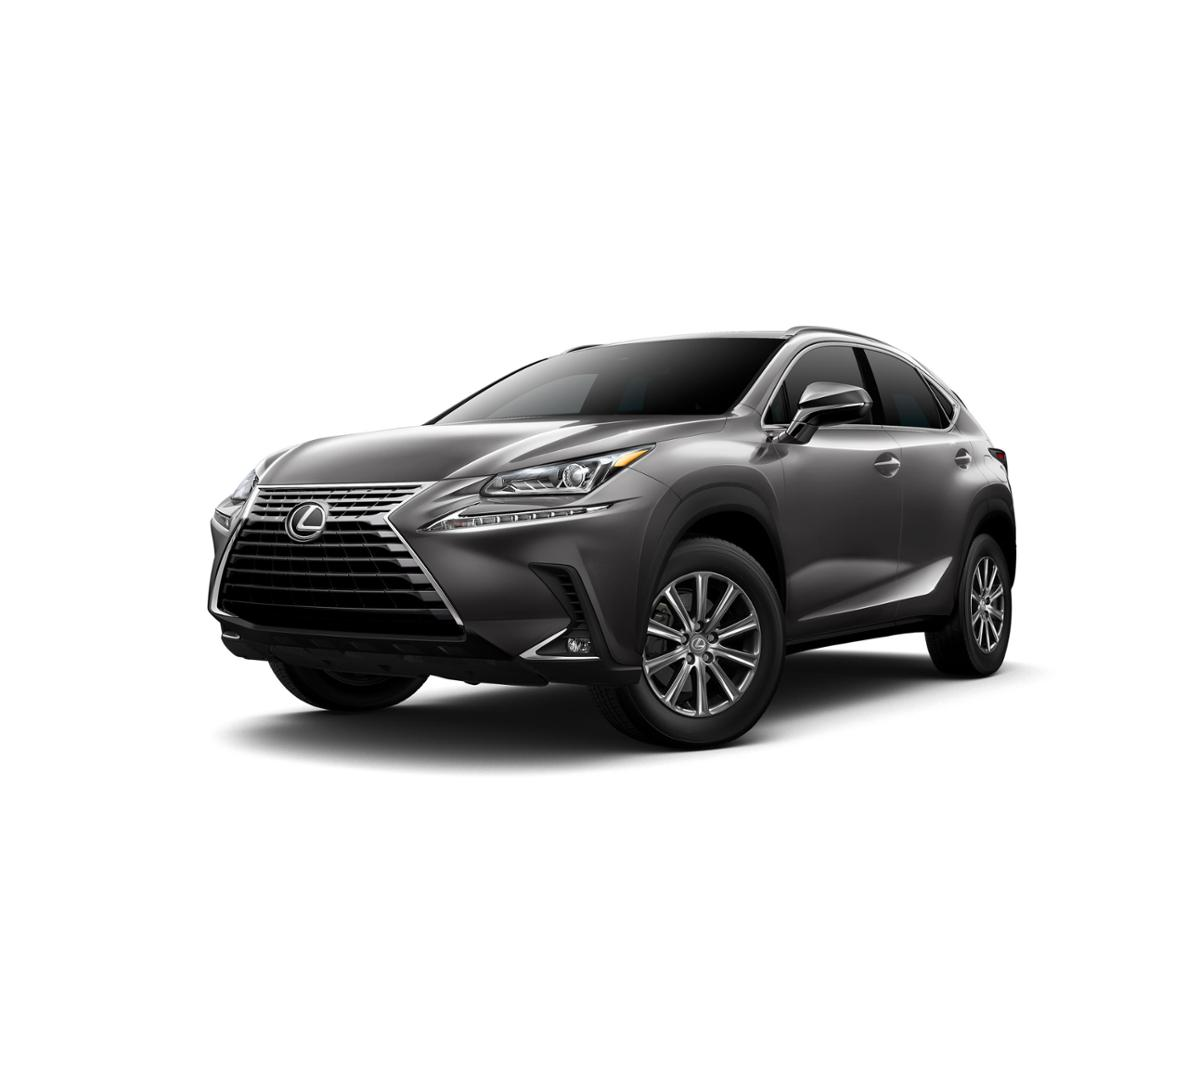 2019 Lexus NX 300 Vehicle Photo in Bedford, NH 03110